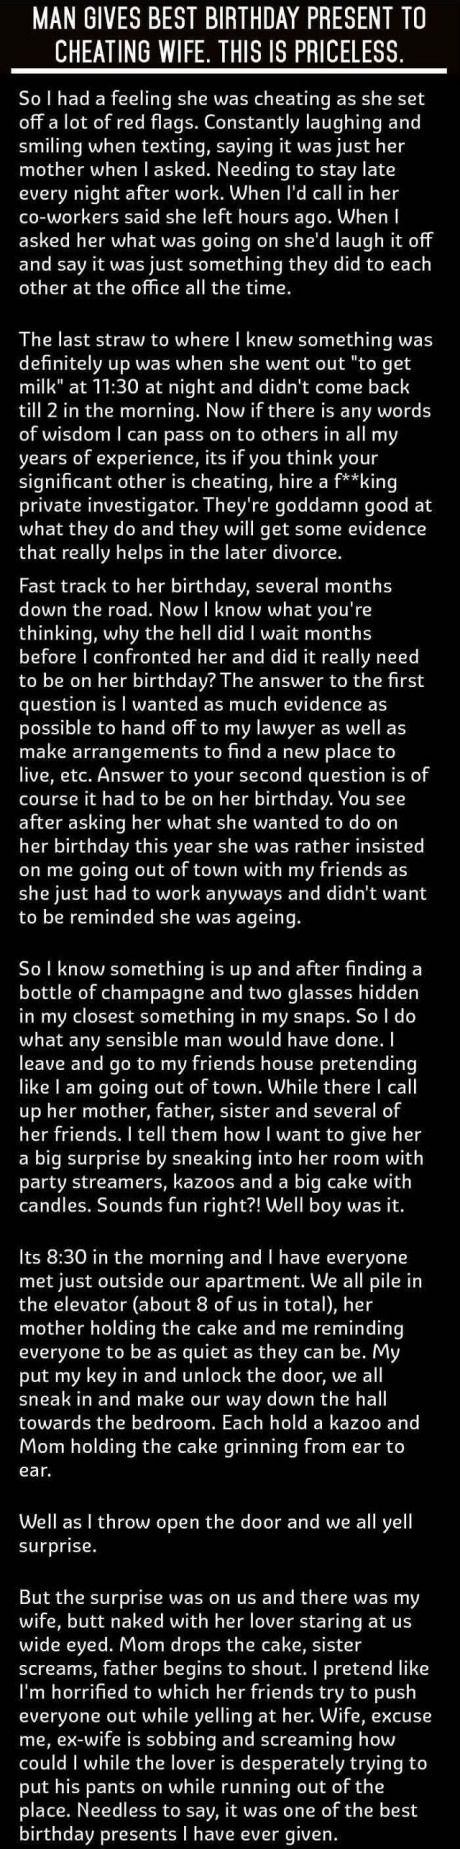 Birthday surprise to cheating spouse